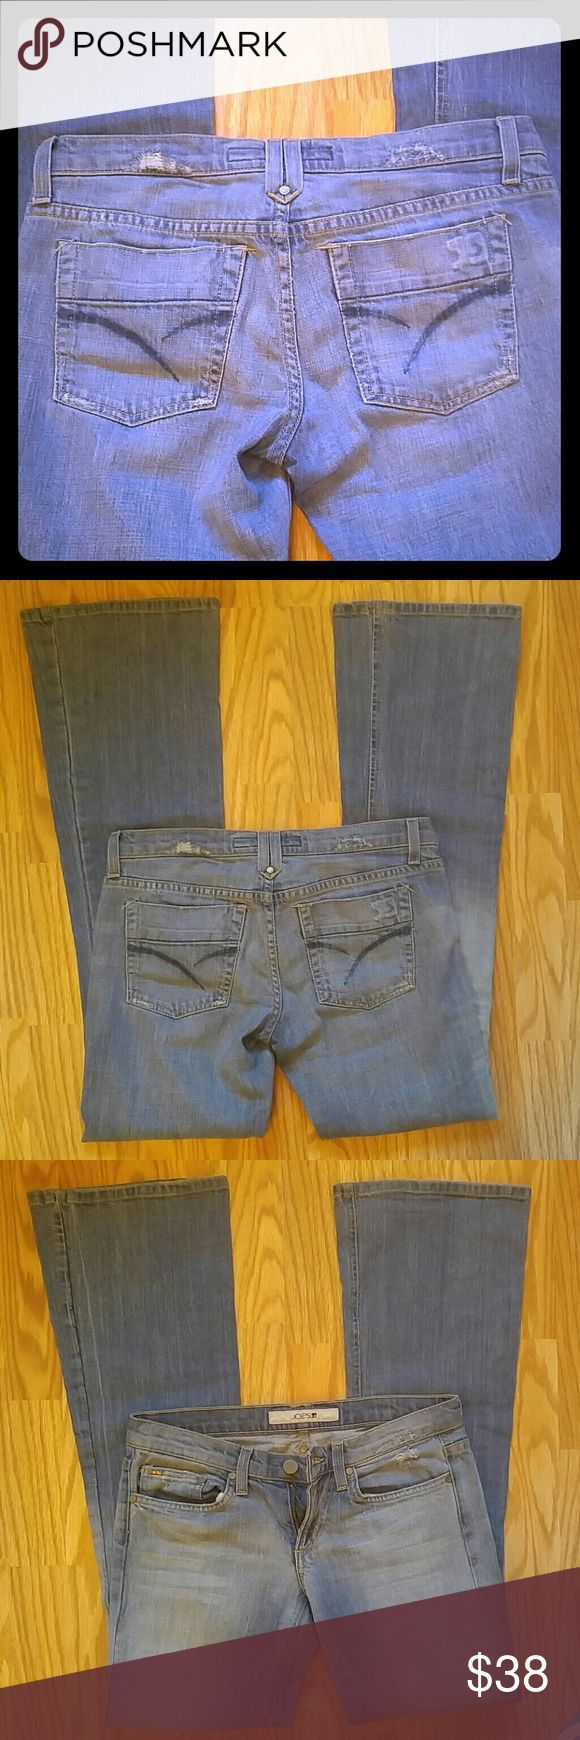 """Joe's light denim jeans like new! Worn once!  Perfect condition Joe's premium denim in Ray style. Medium/light wash, 33"""" inseam, leg opening measures 9.5"""" laying flat. Fit like a 27, low rise. Joe's Jeans Jeans Flare & Wide Leg"""